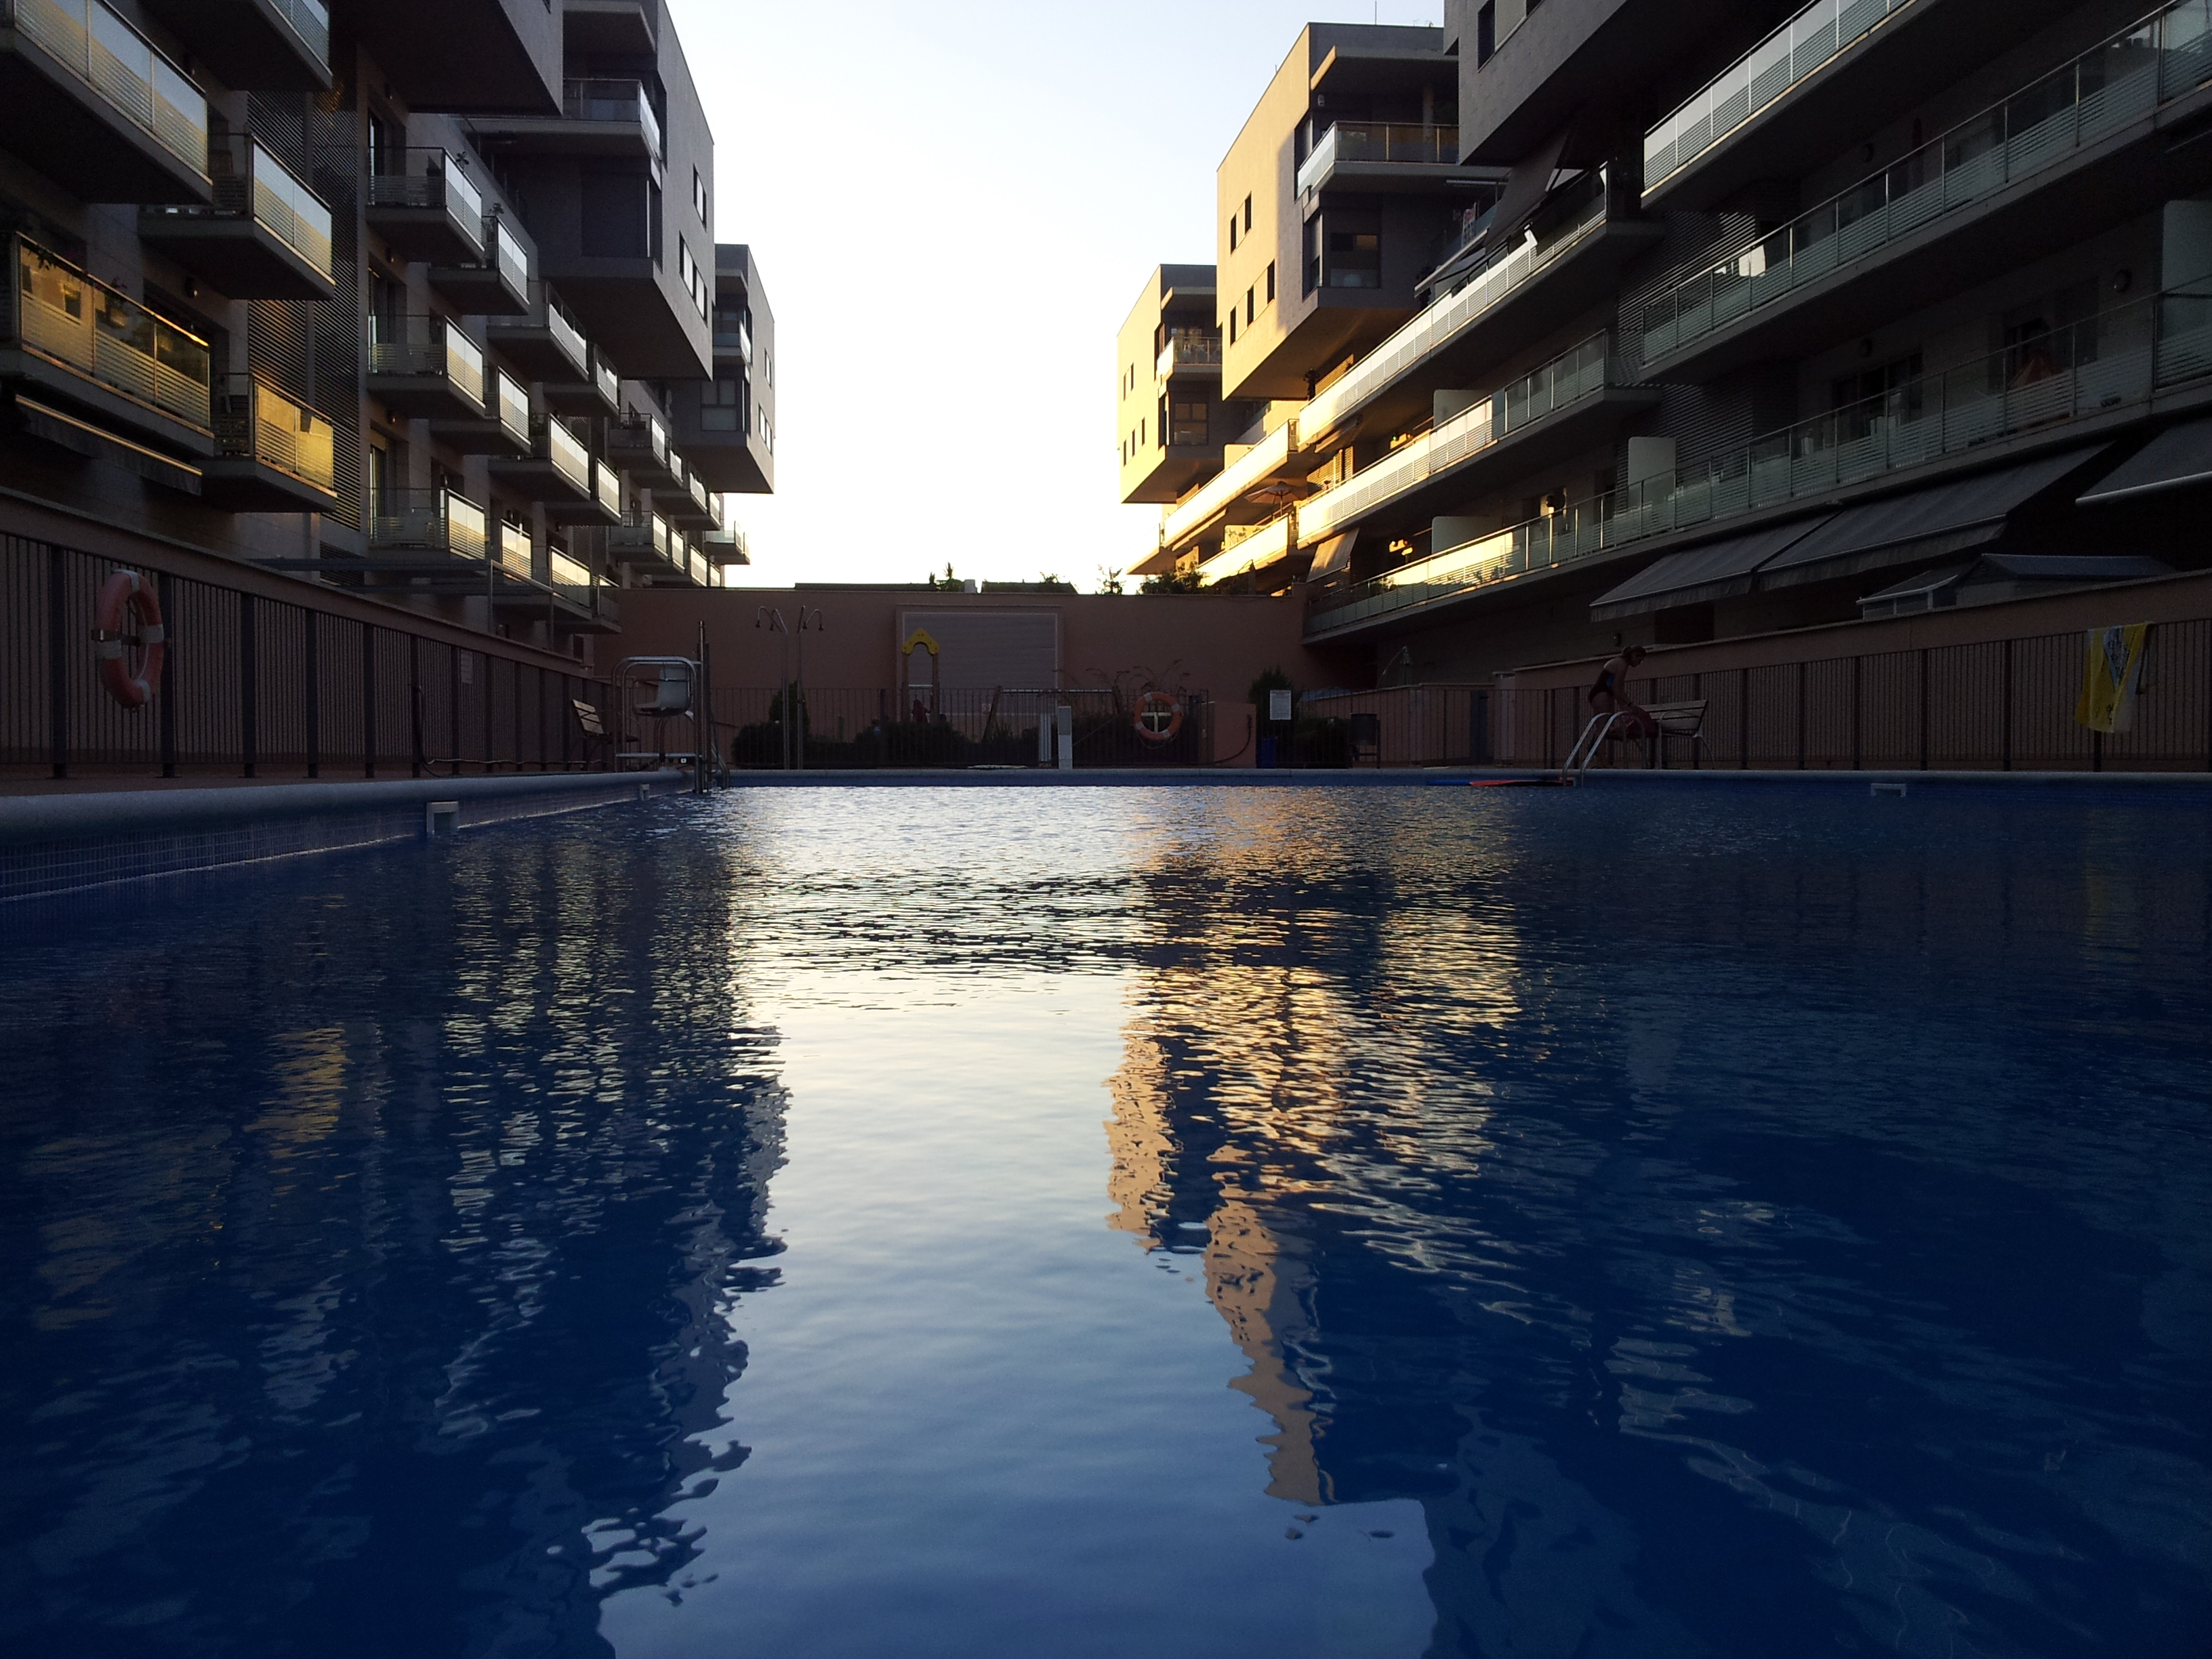 huge, shared pool, open the whole year from 7 a.m. to 11 p.m. in the night.